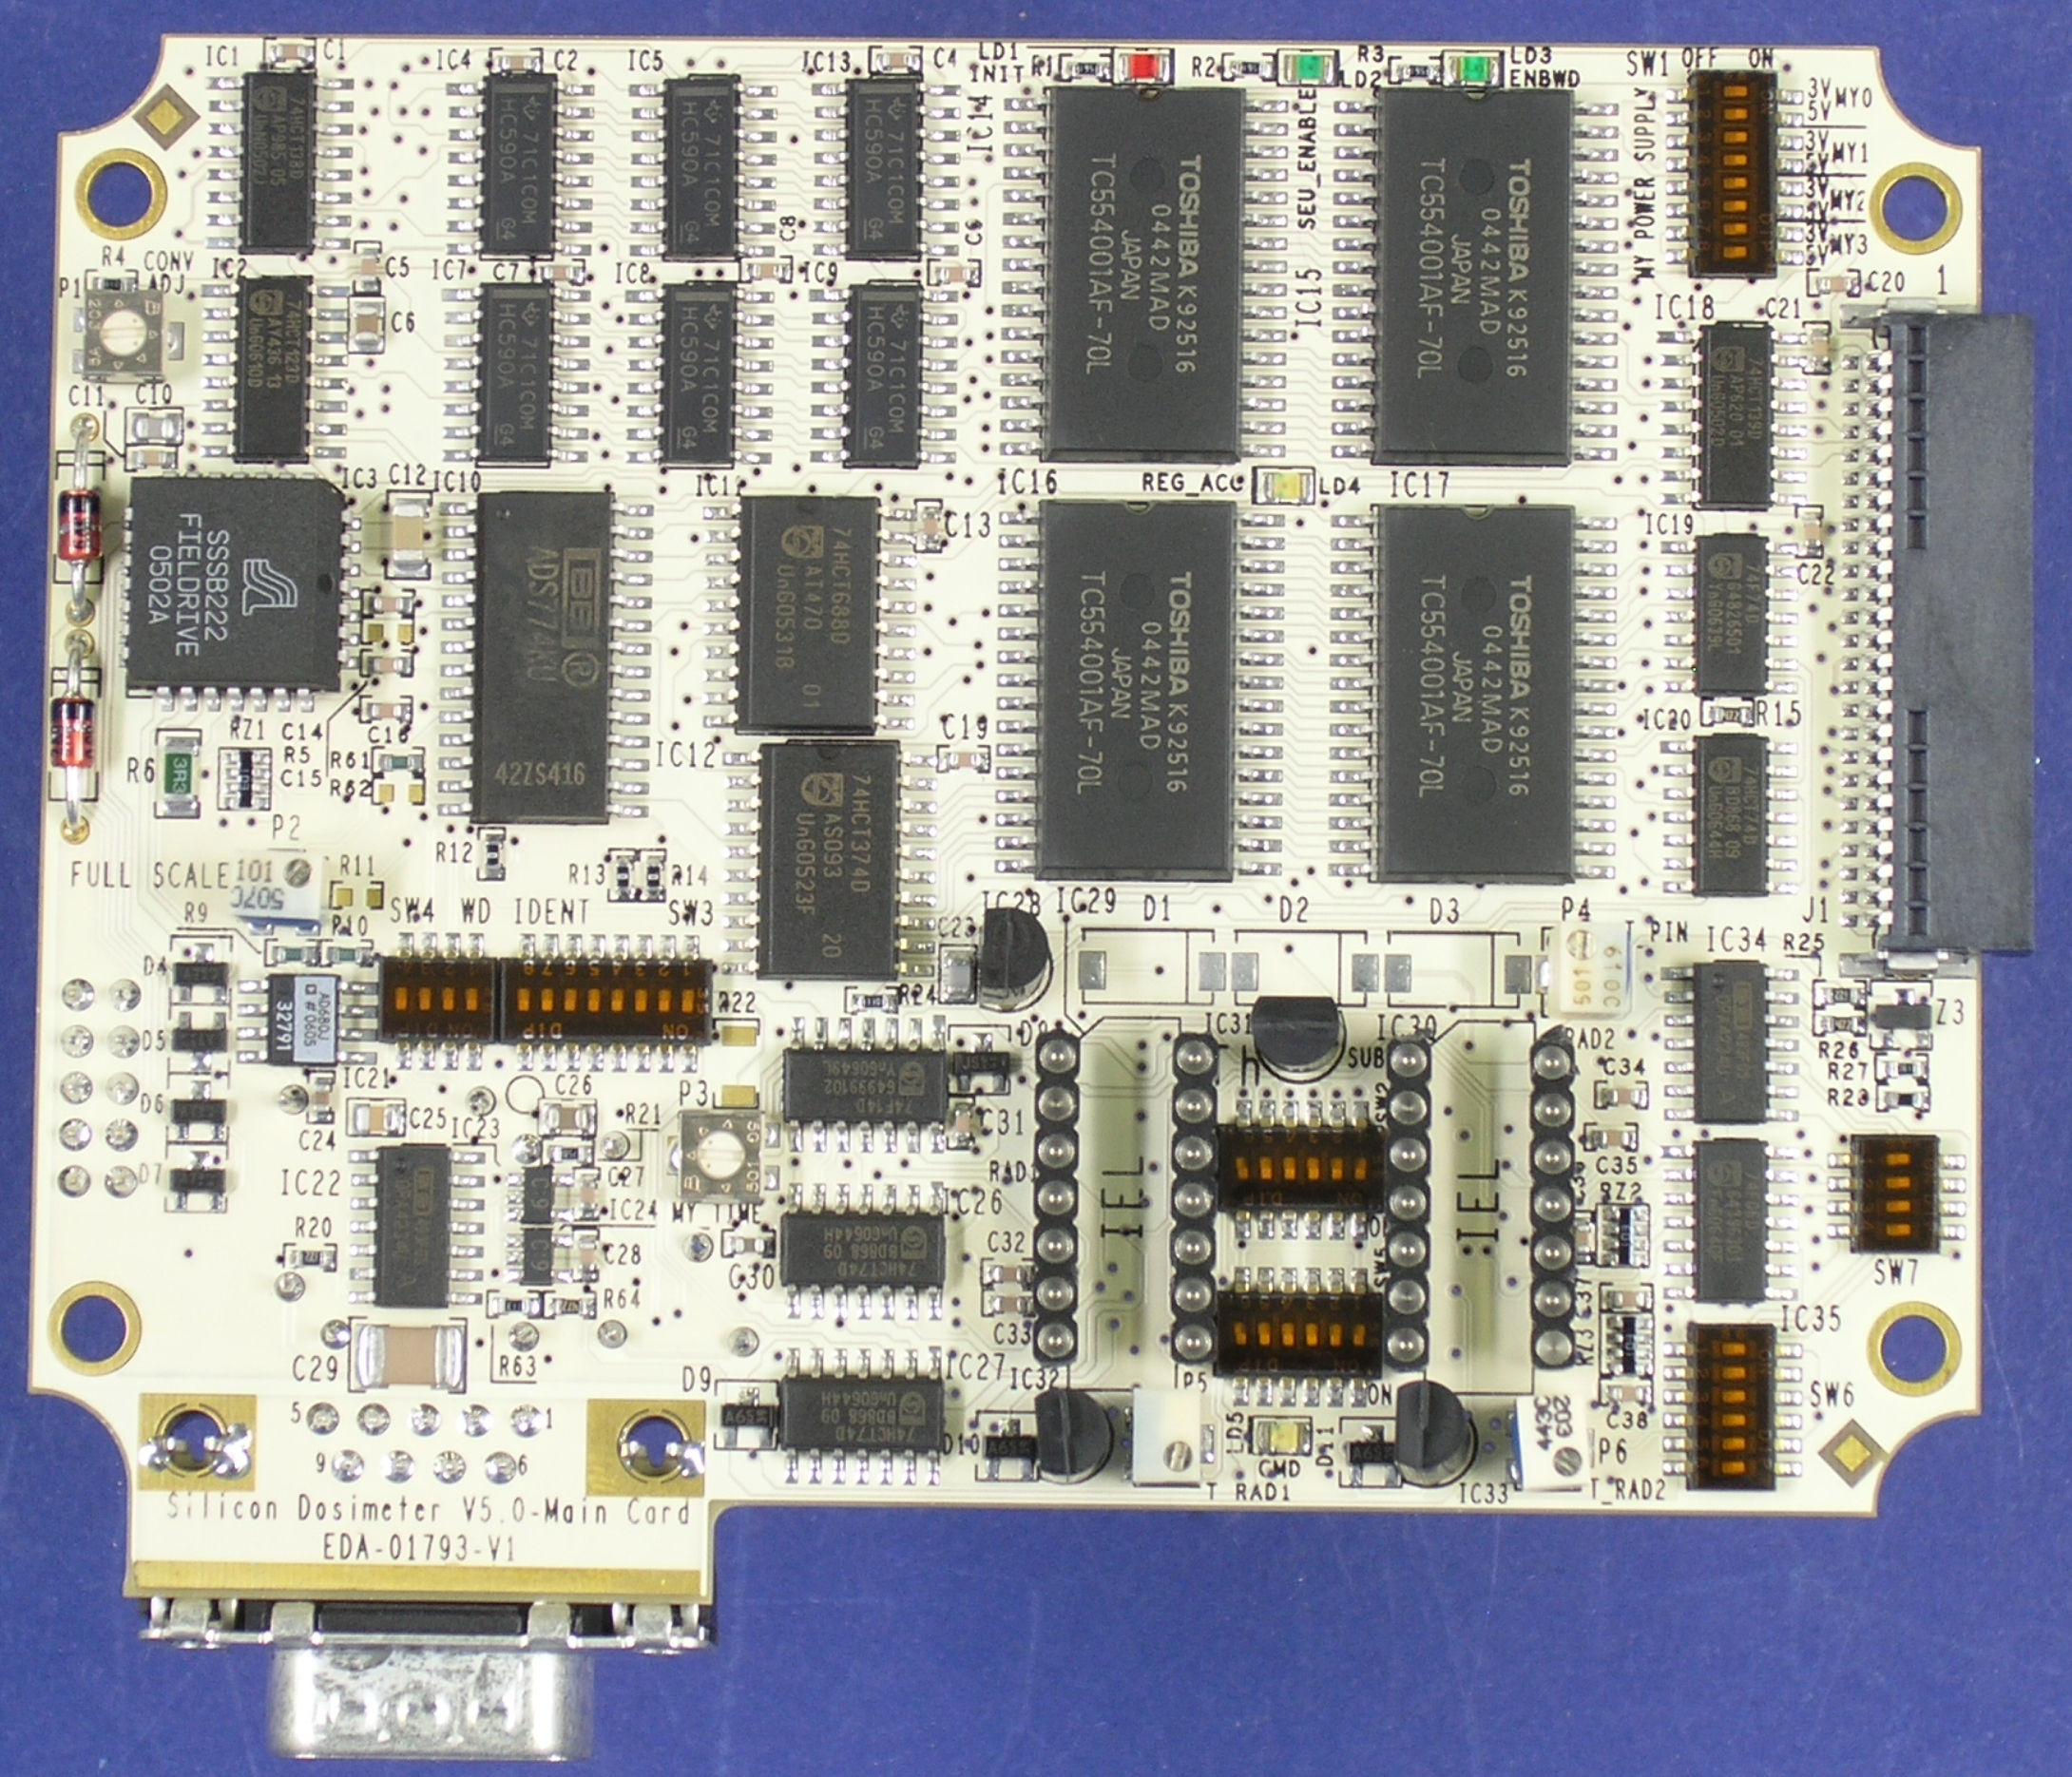 Ts Dem News Image Lead Free Pcb Assembly Rohs Printed Circuit Board Assemblies 28 19 2008 Published The Article Beware Single Hit About Radiation Monitors Designed By Lea Group In Total 329 Have